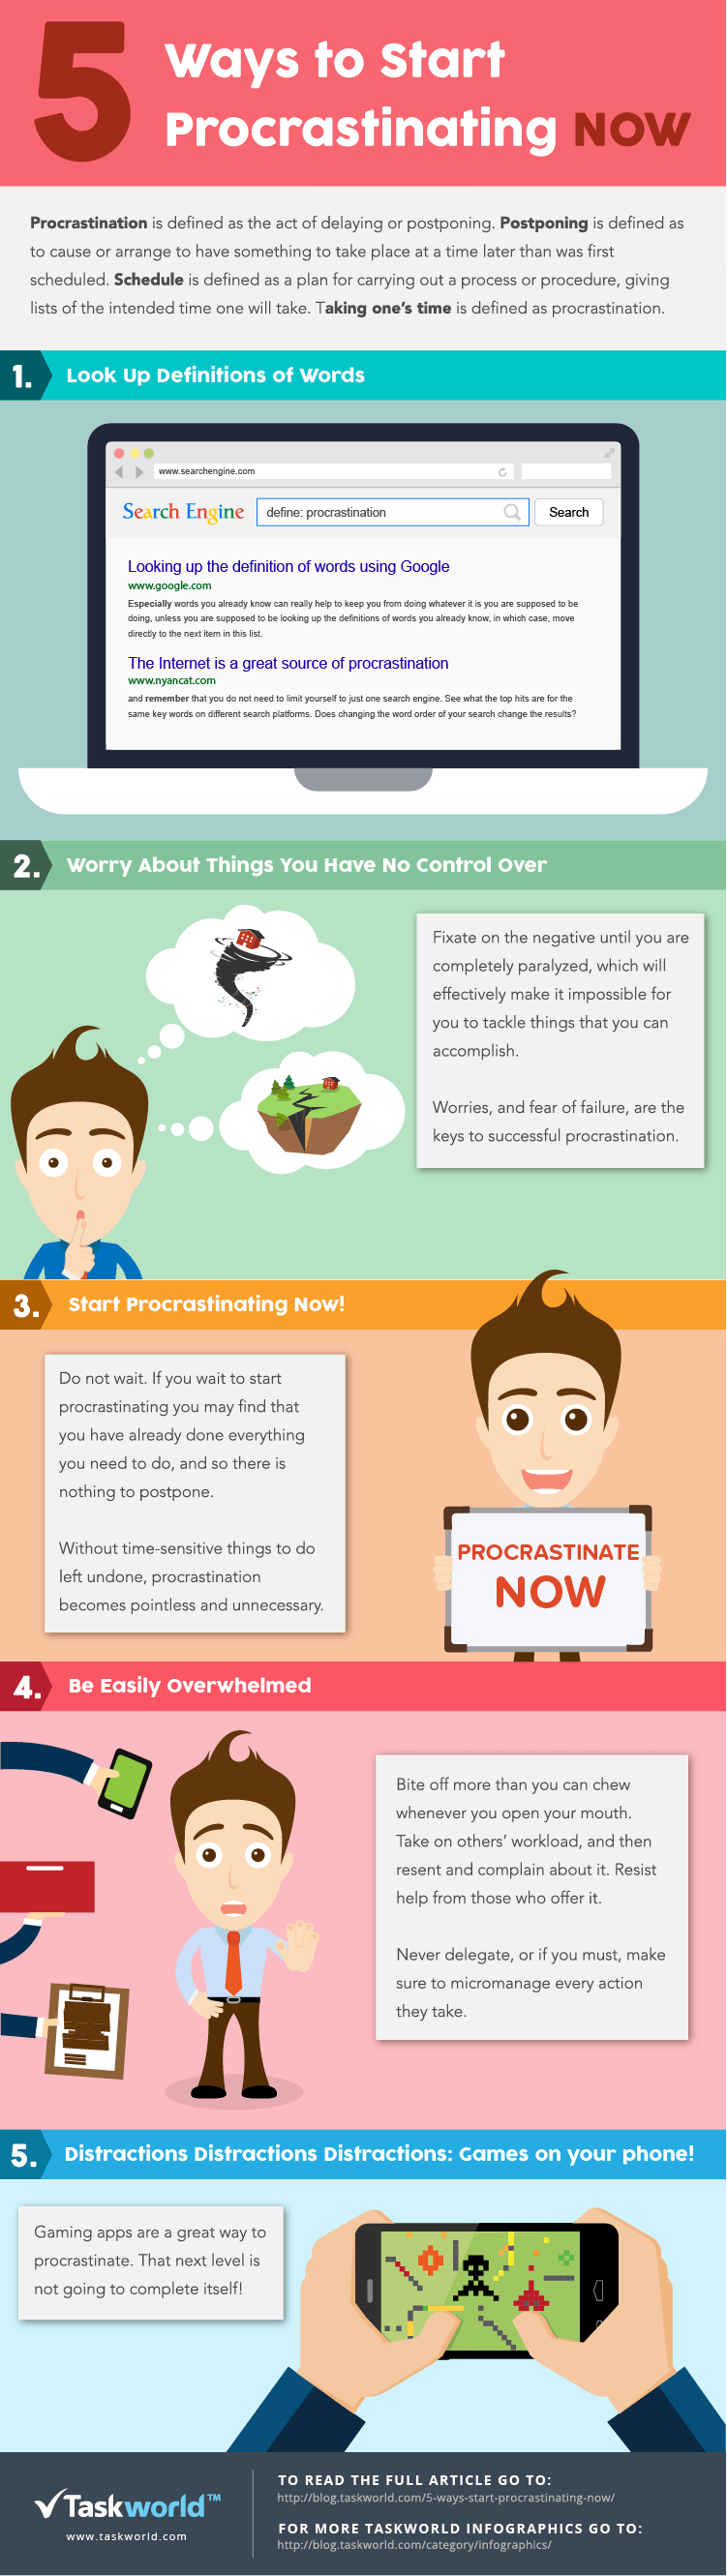 5 Ways to Procrastinating Now Infographic